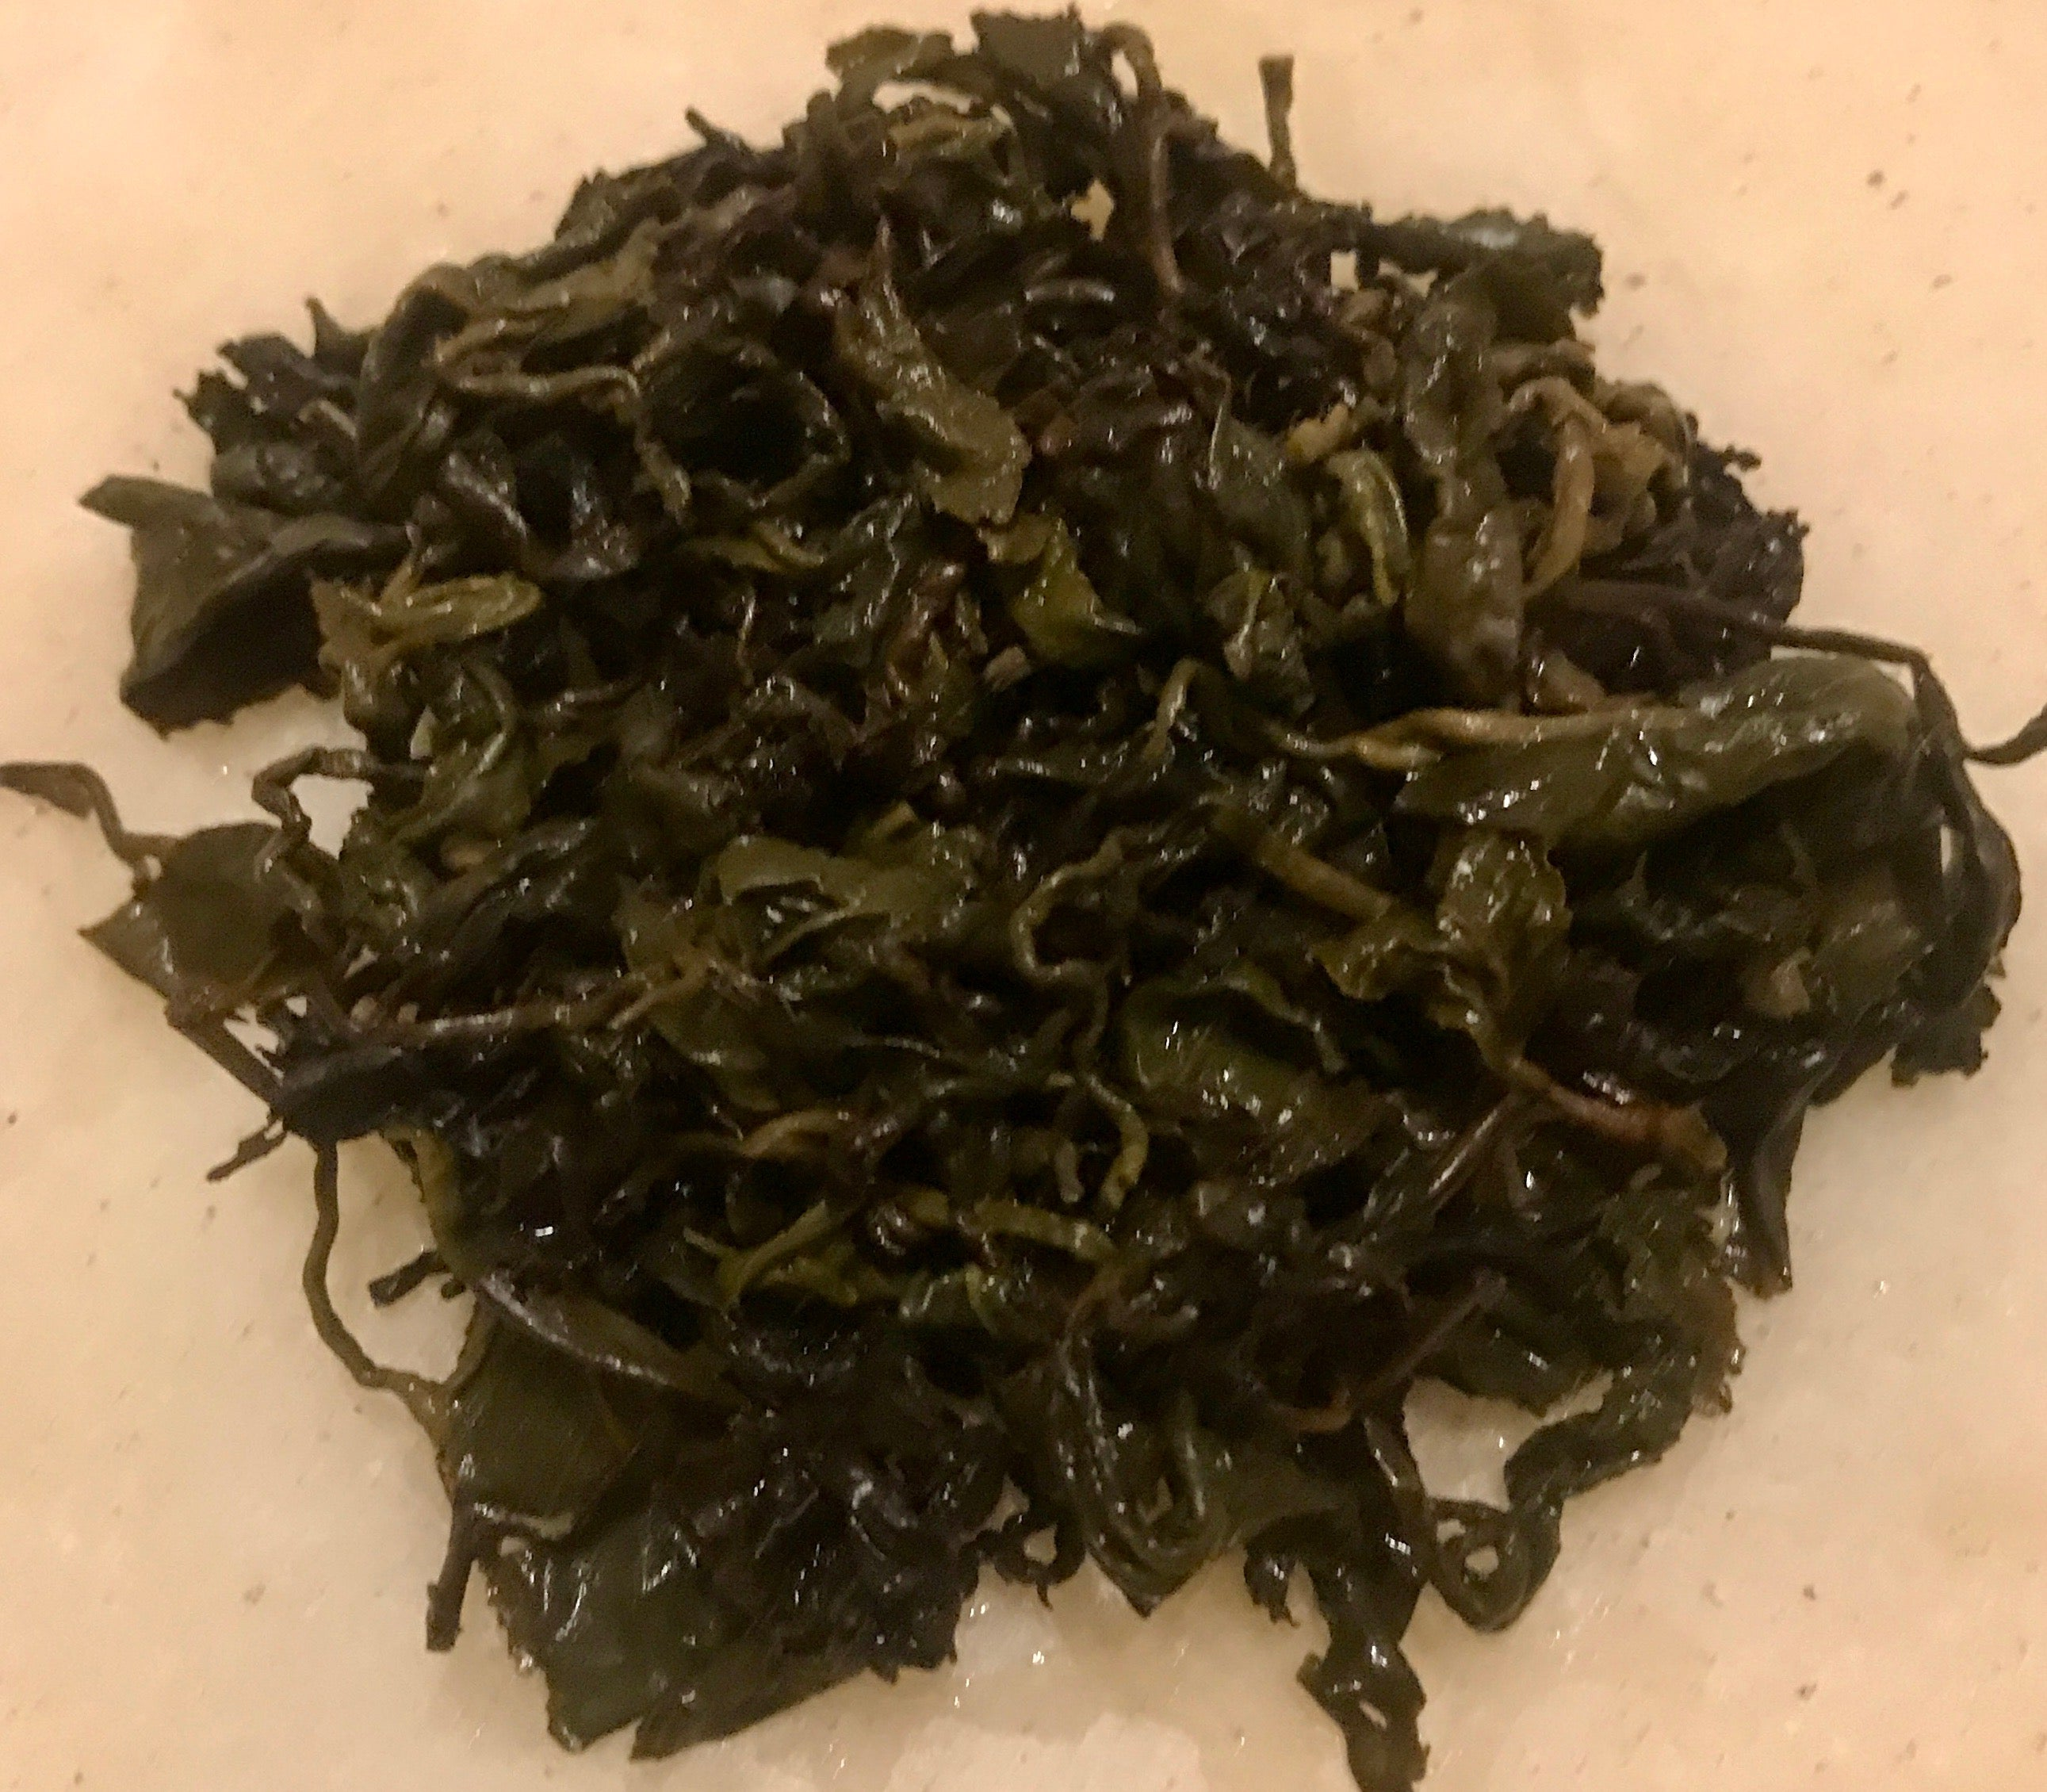 Eco-Cha Tea Club Charcoal Roasted High Altitude Oolong Tea - brewed leaves